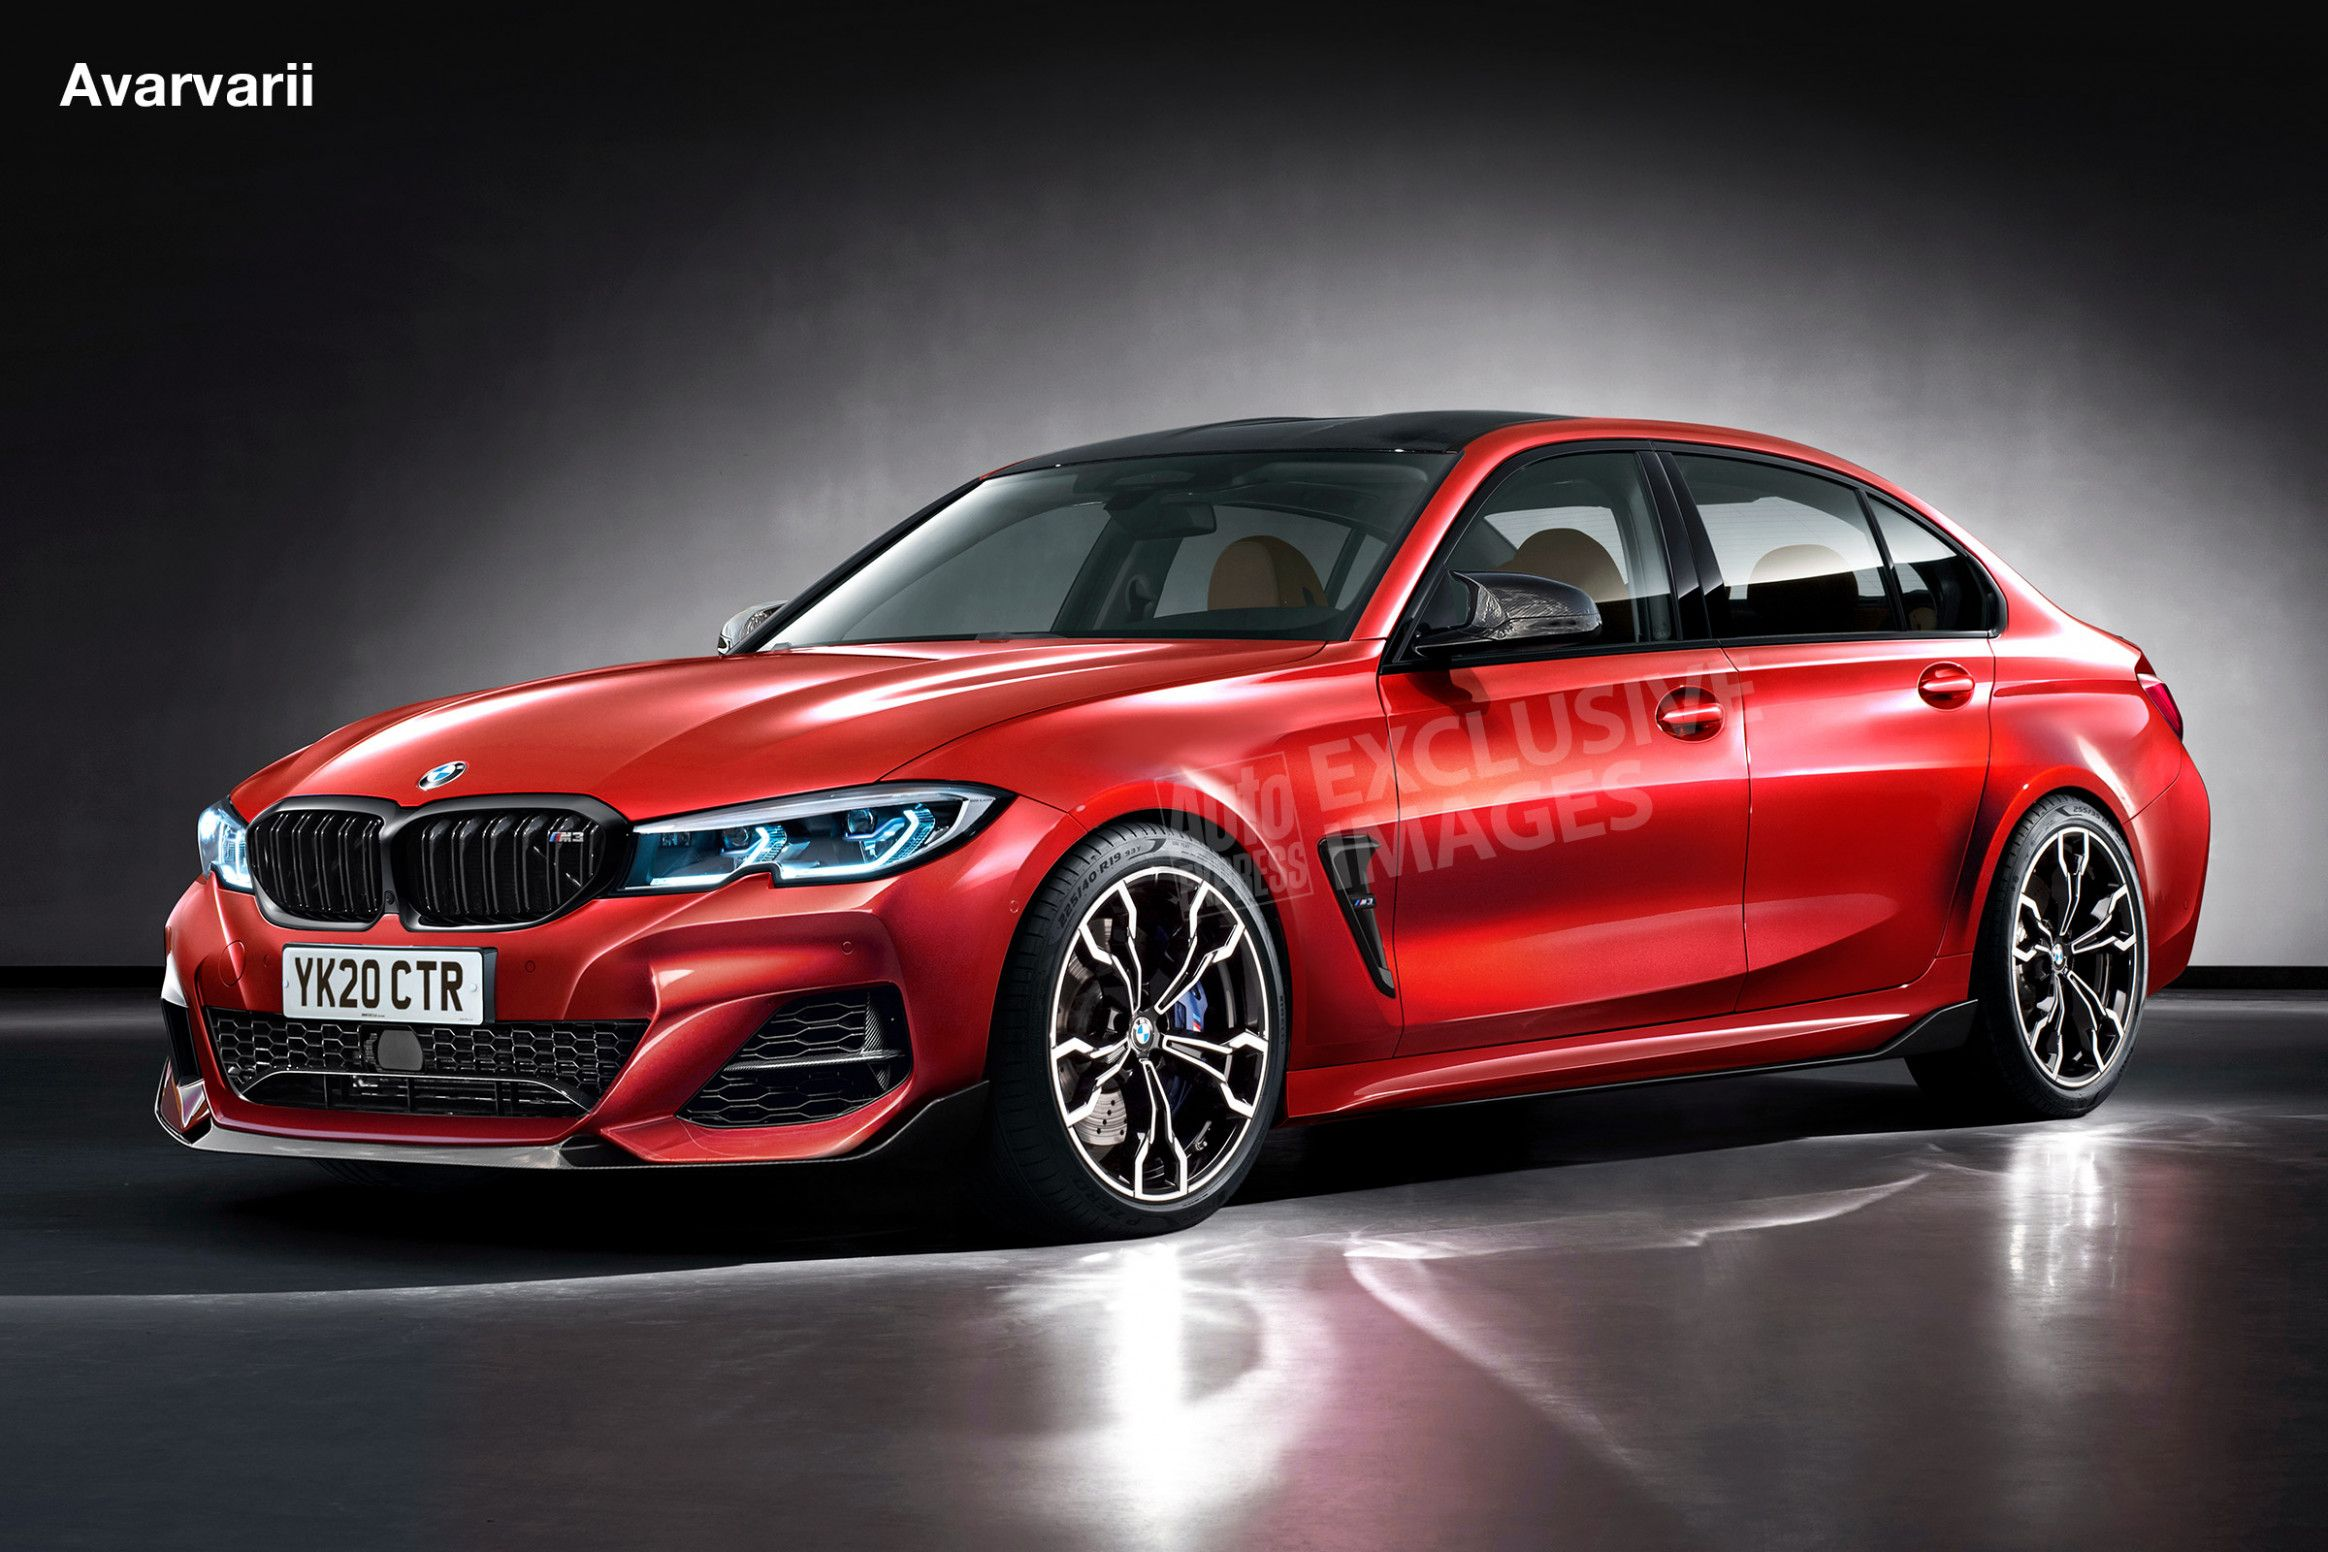 8 Image 2020 Bmw M3 Price In 2020 Bmw Bmw M3 Price Bmw M3